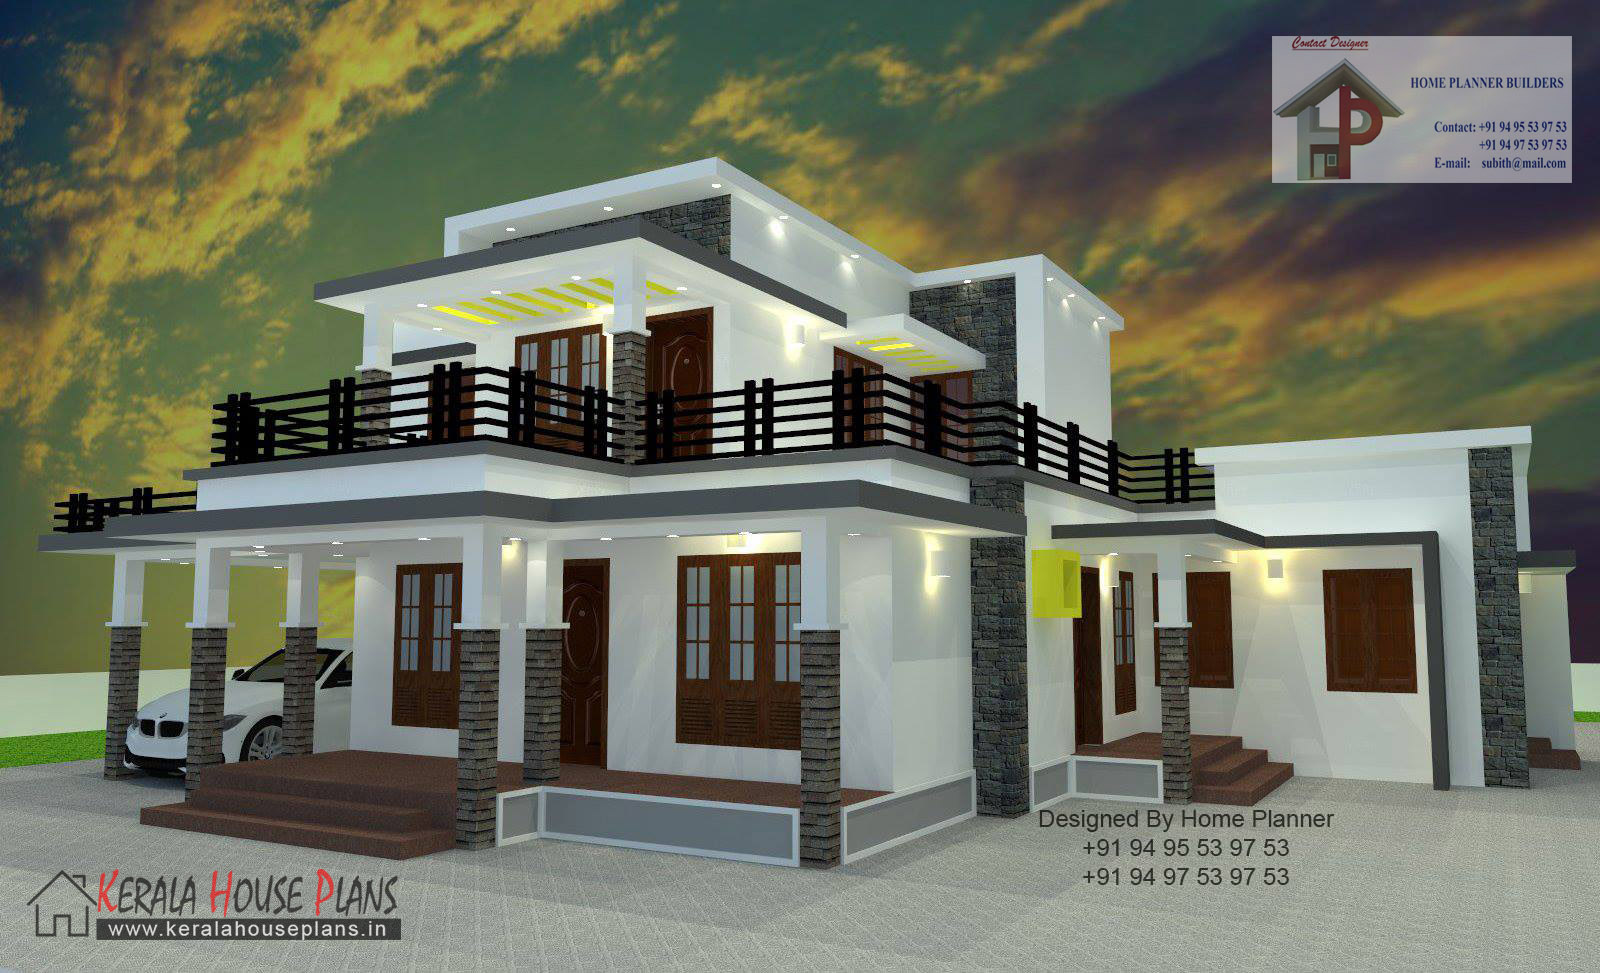 2000 sqft box type house kerala house plans designs Home design house plans